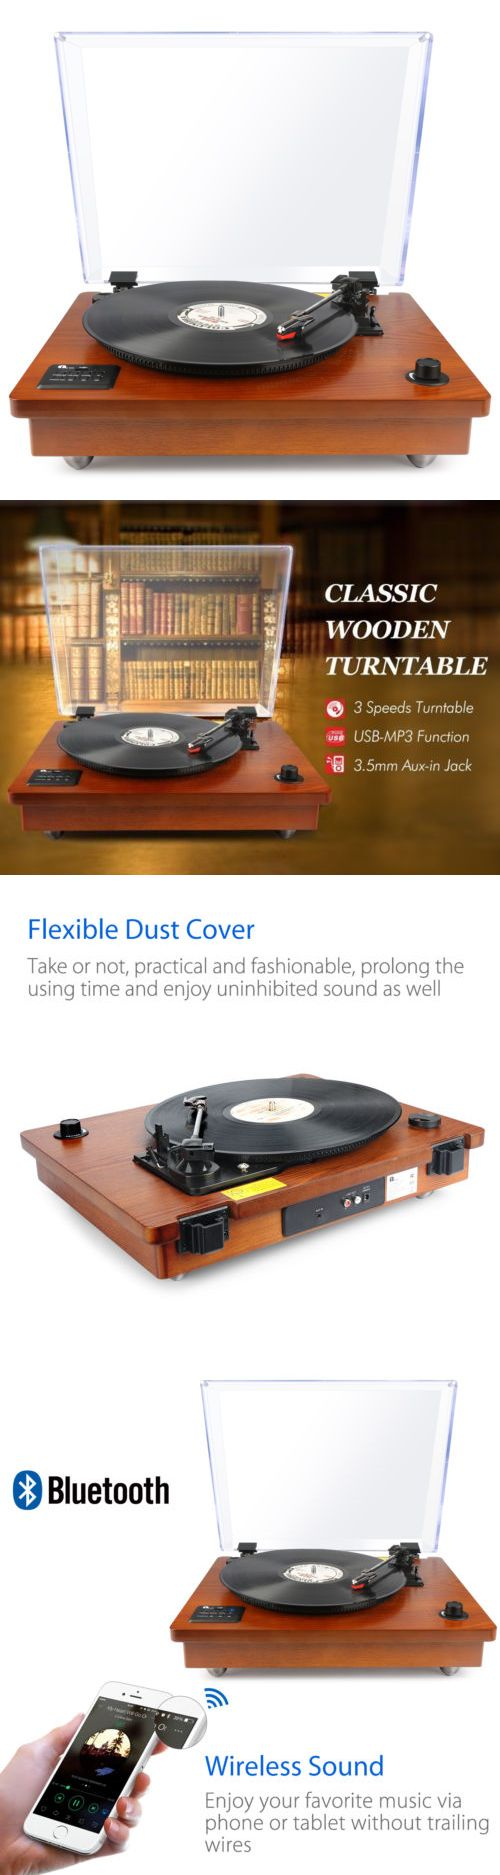 Record Players Home Turntables: Bluetooth Usb Turntable Vintage Record Player Vinyl-To Mp3 Nature Wood, Brown -> BUY IT NOW ONLY: $103.99 on eBay!